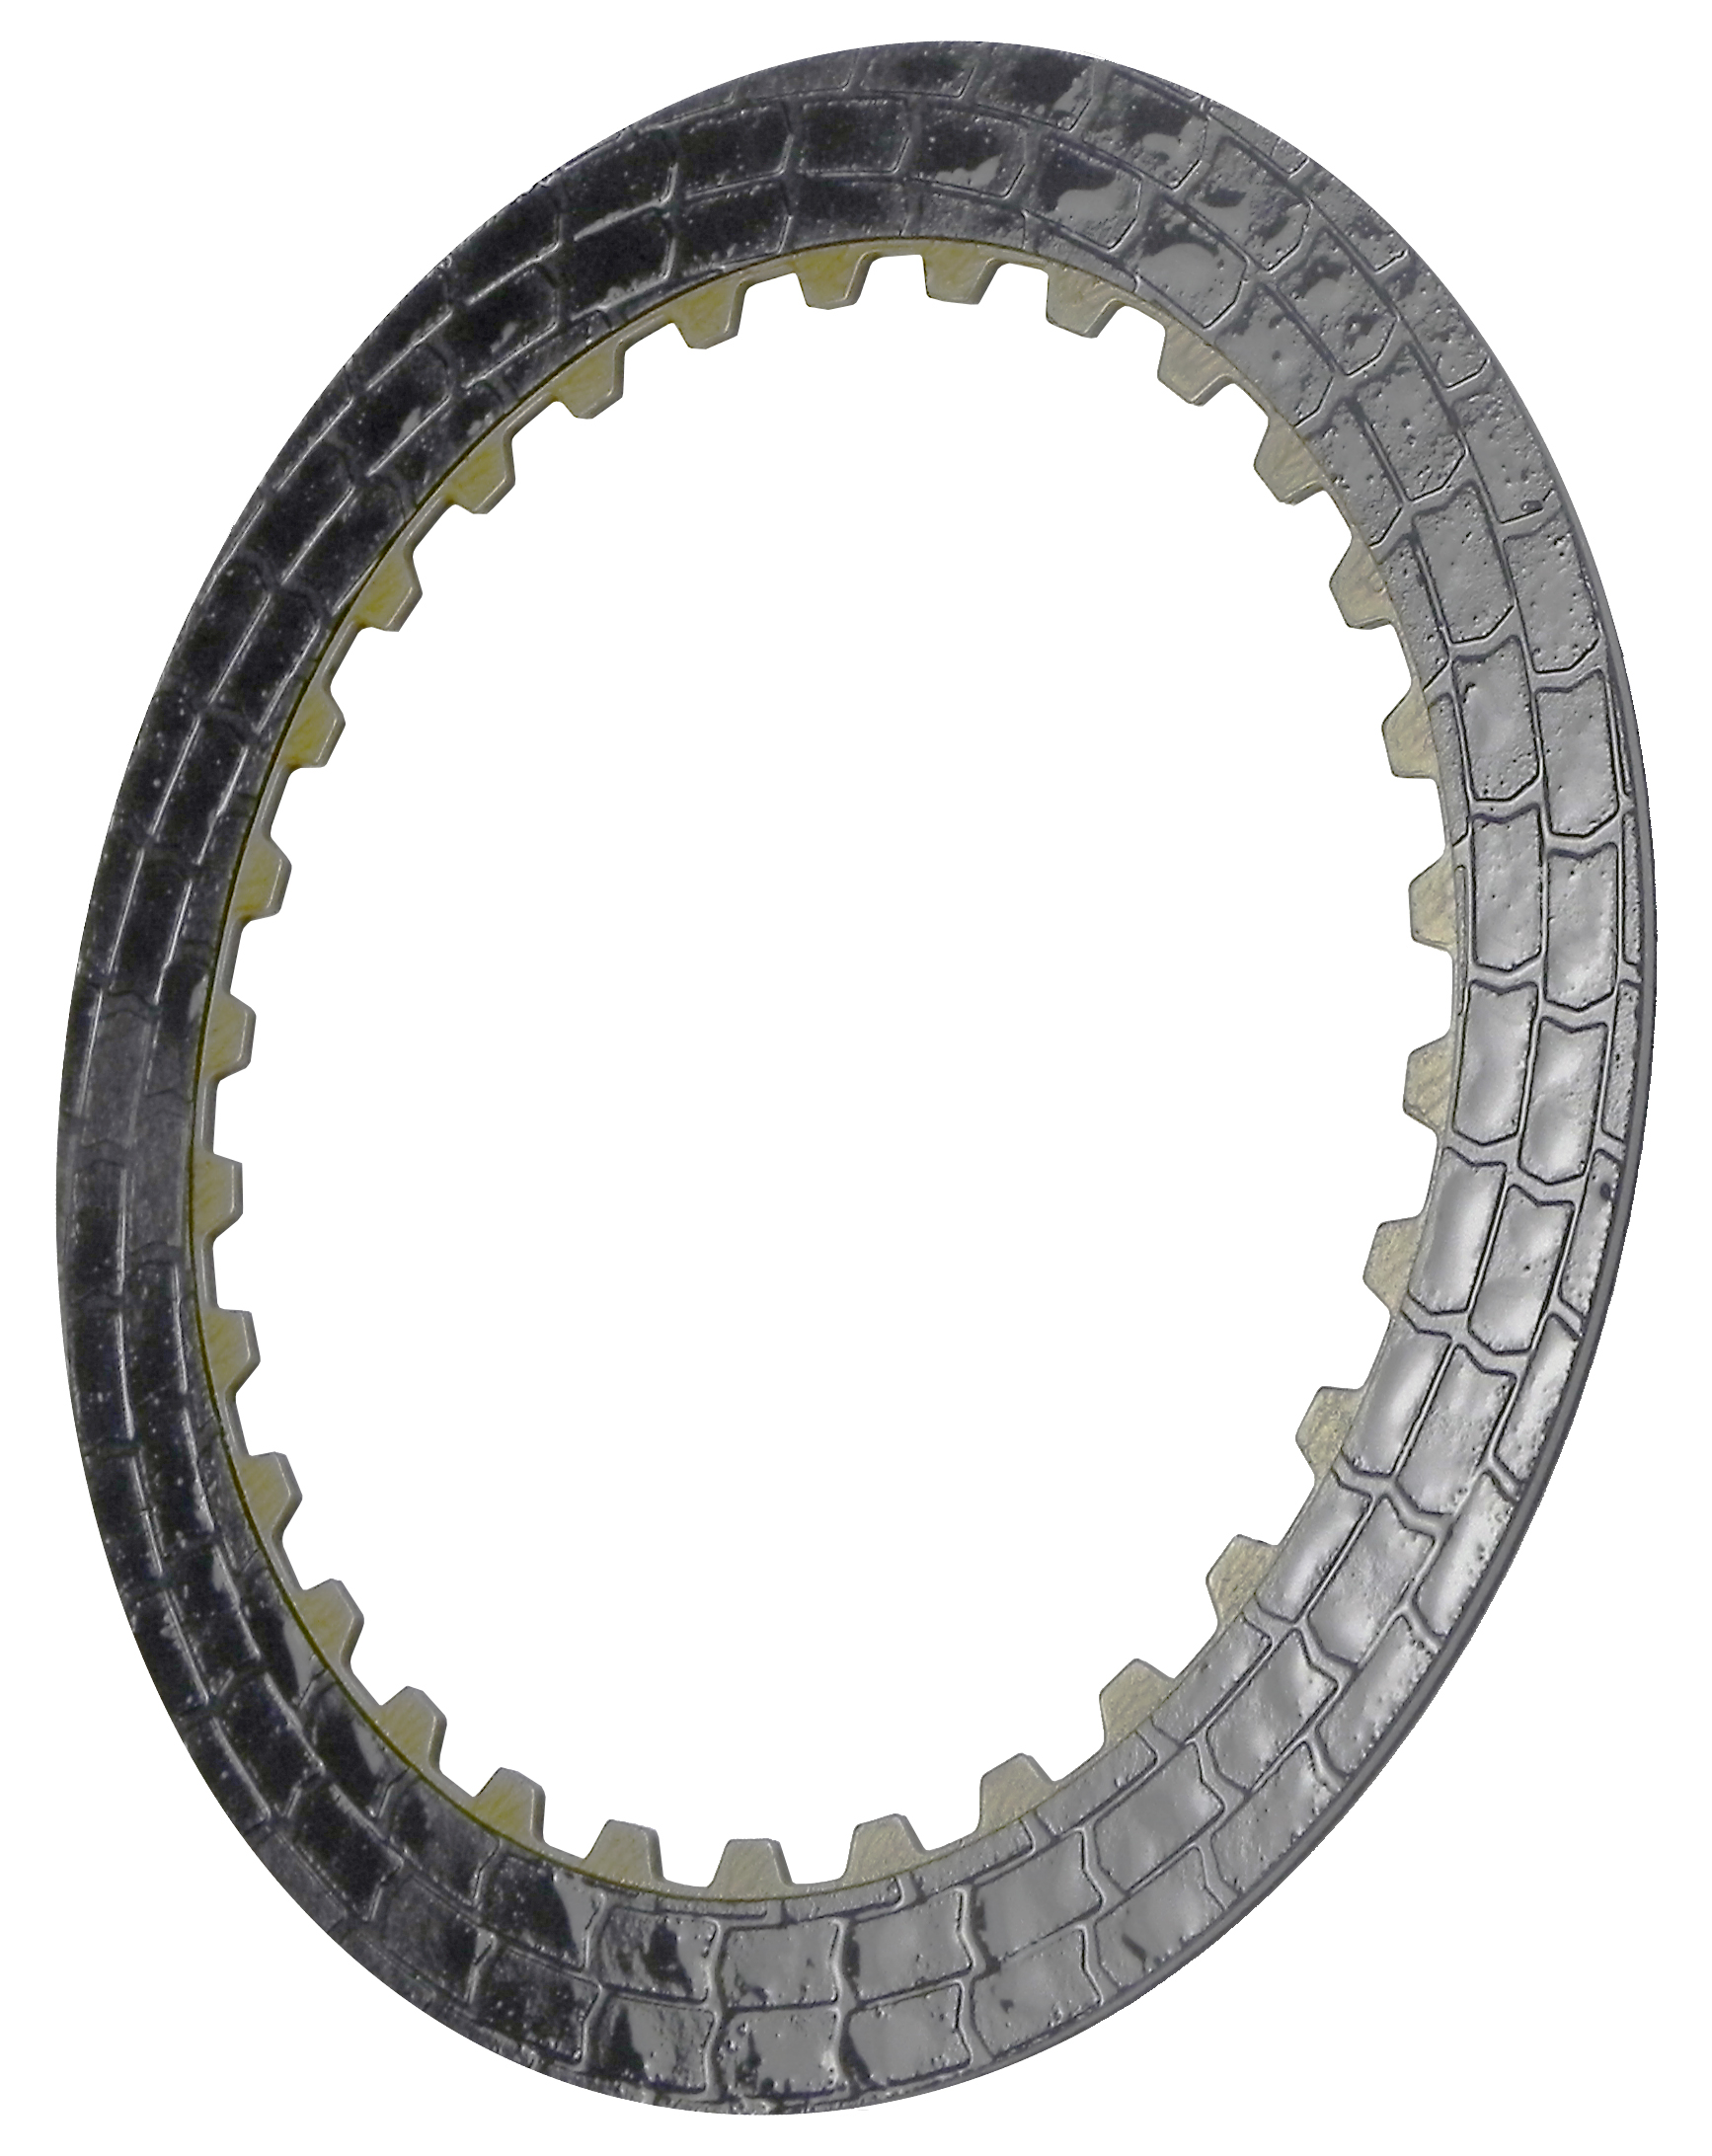 6HP19, 6HP19A, 6HP19X, 6HP21, 6HP21X, 09L (HT) Hybrid Technology Friction Clutch Plate